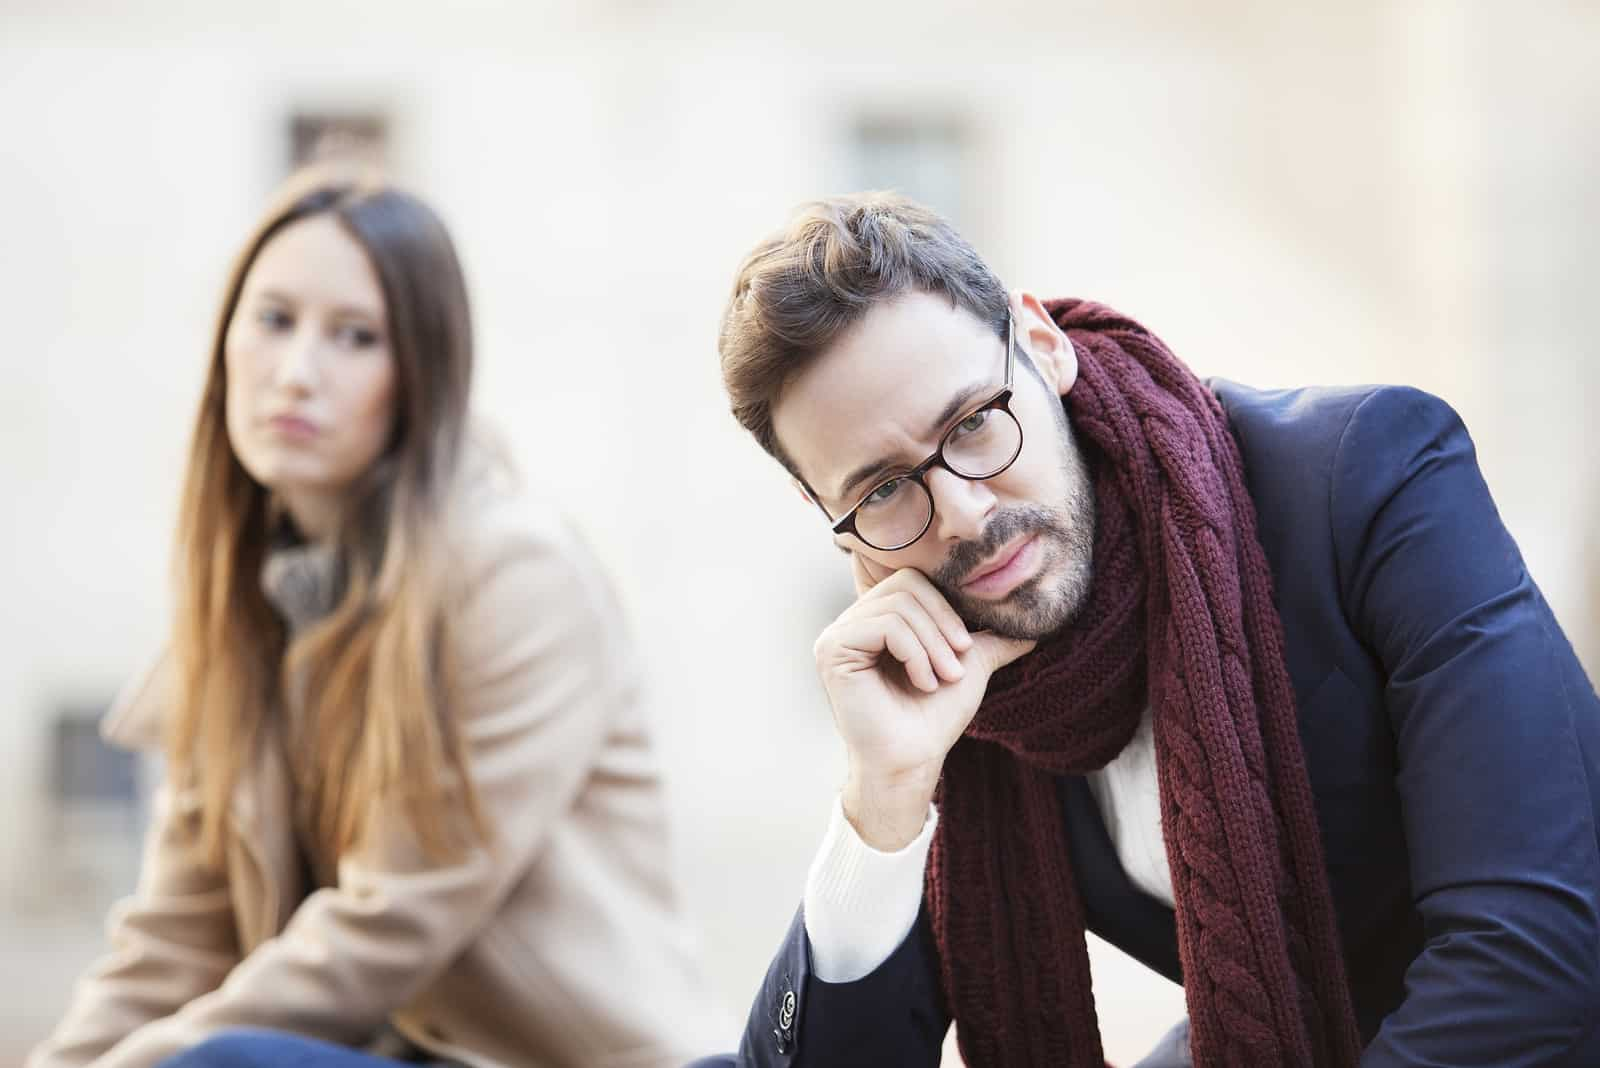 pensive man with eyeglasses sitting near woman outdoor